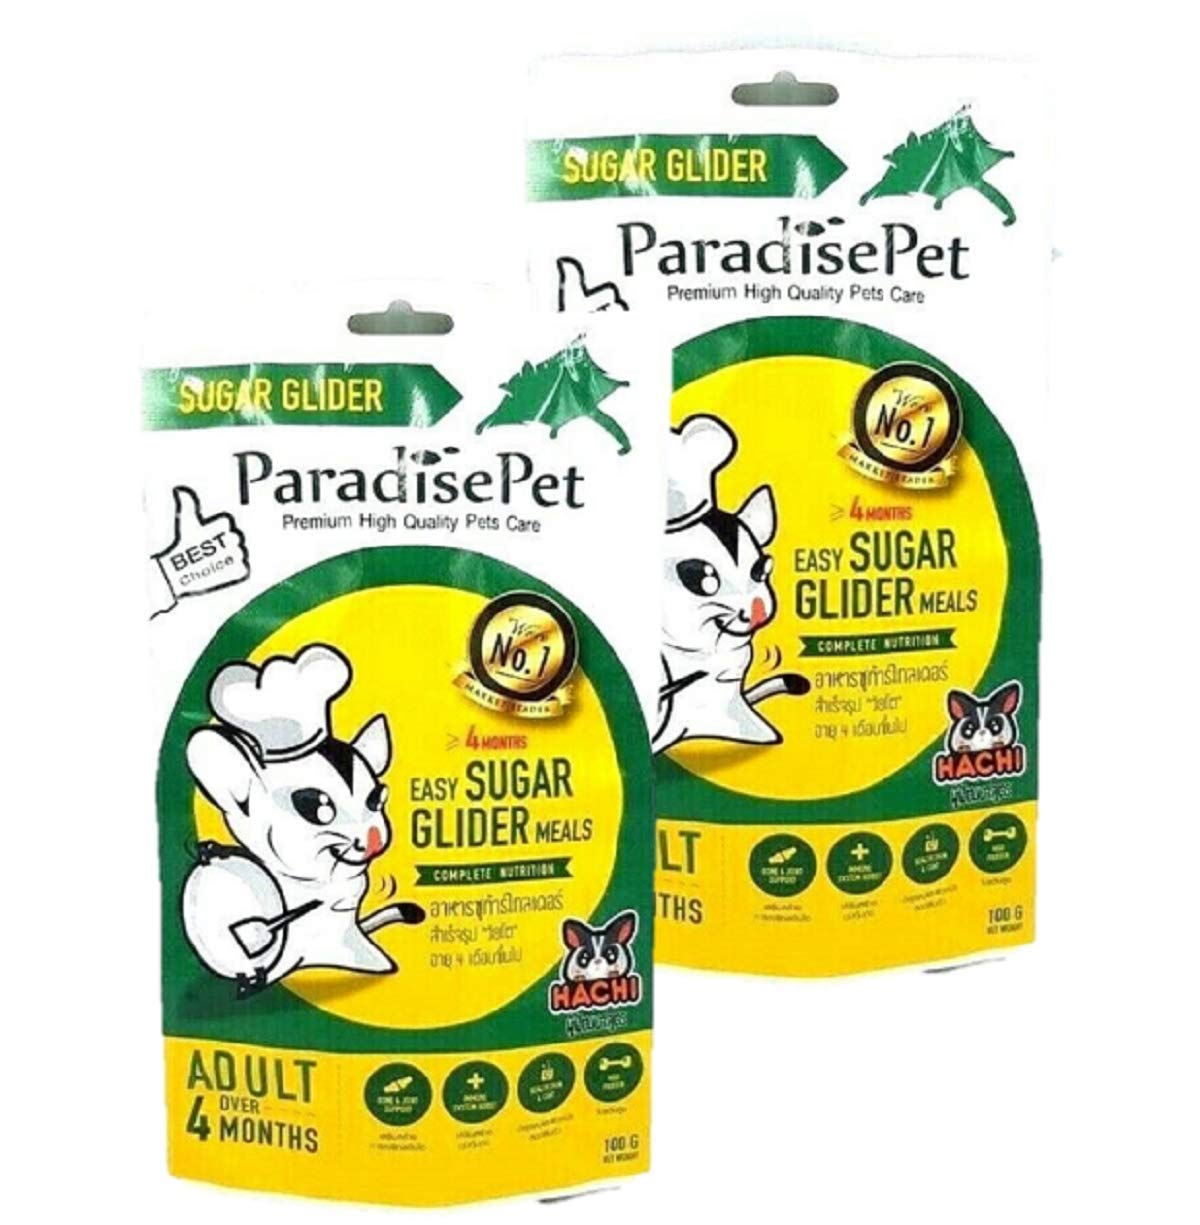 2 Pcs Instant Food Powder Complete Nutrition Meals for Sugar Glider Marmoset Squirrel Chinchillas Hamster or Small Exotic Pet, Premium Quality Pets Care for Adult or Over 4 Month (100 g.) by Polar Bear's Pet Shop